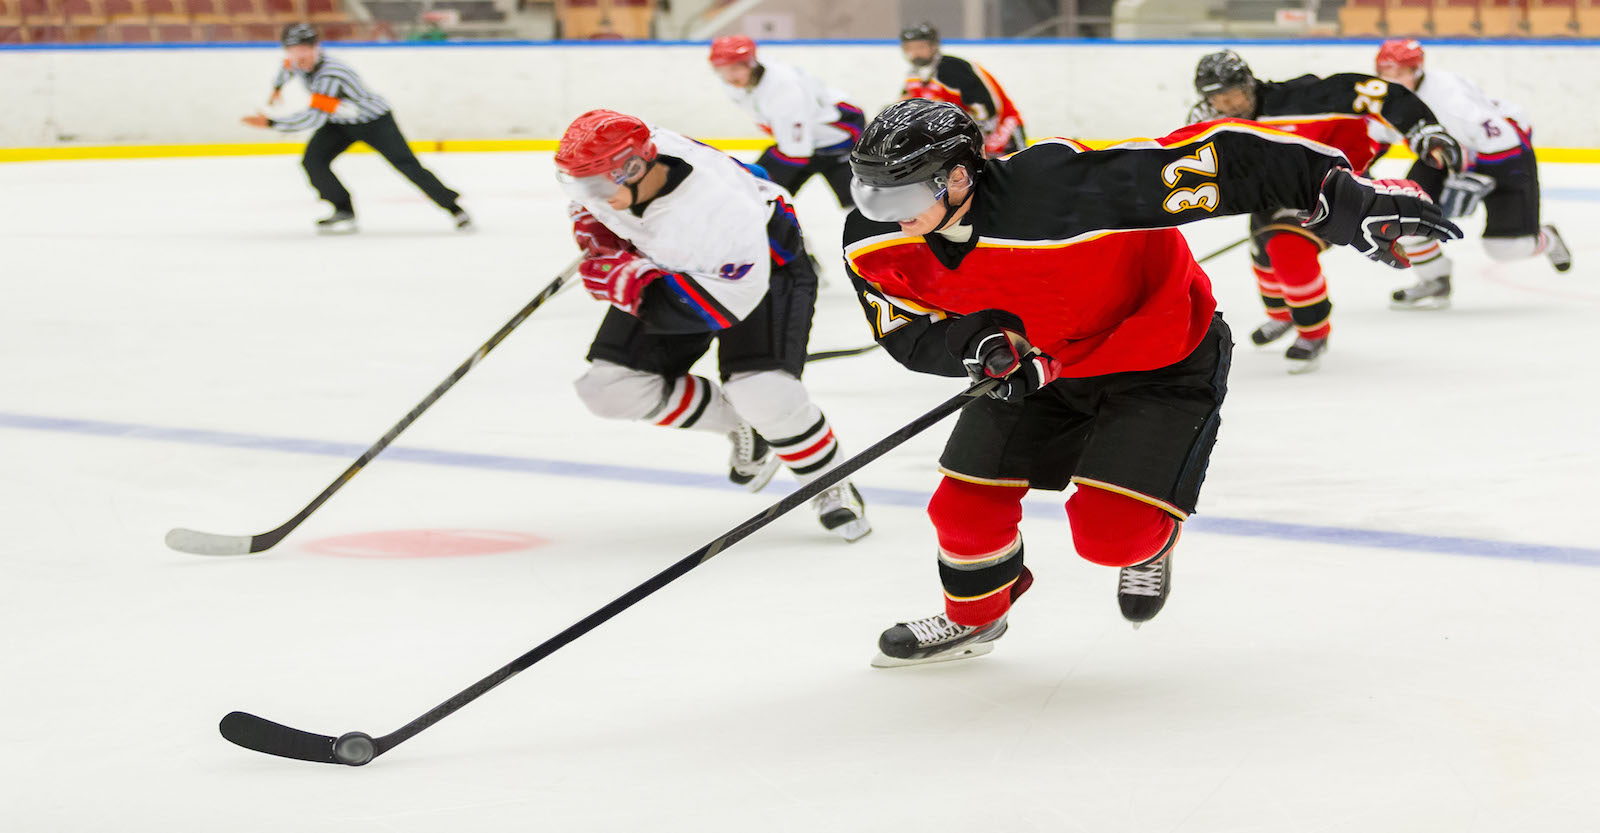 Hockey players racing to the puck